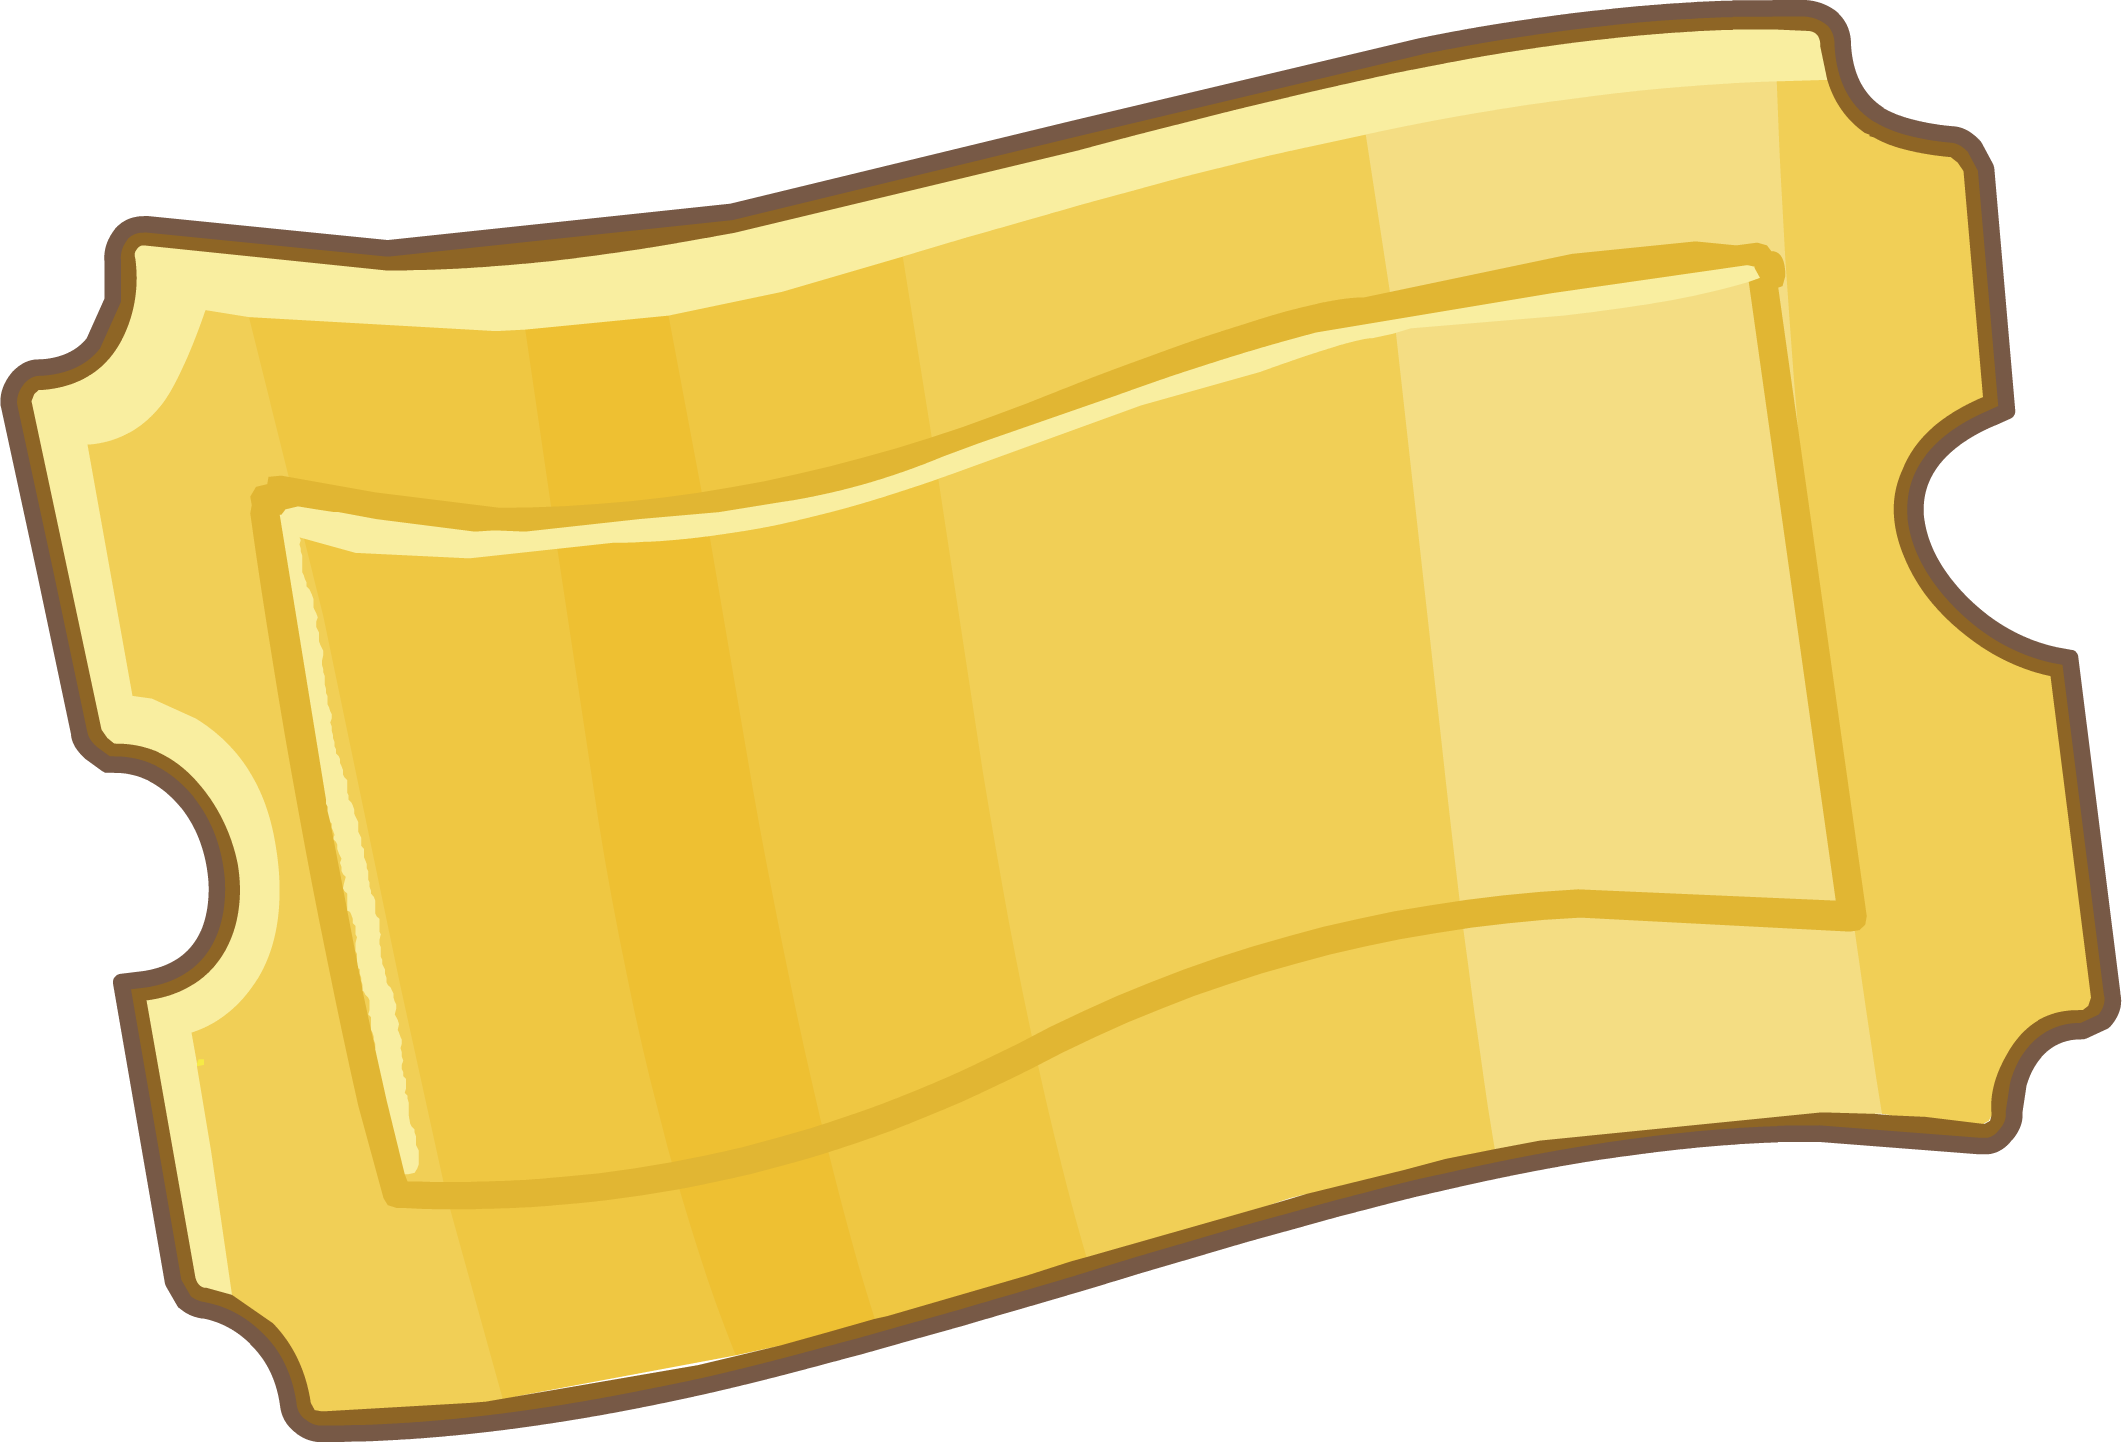 15 tickets clipart golden ticket for free download on ya webdesign